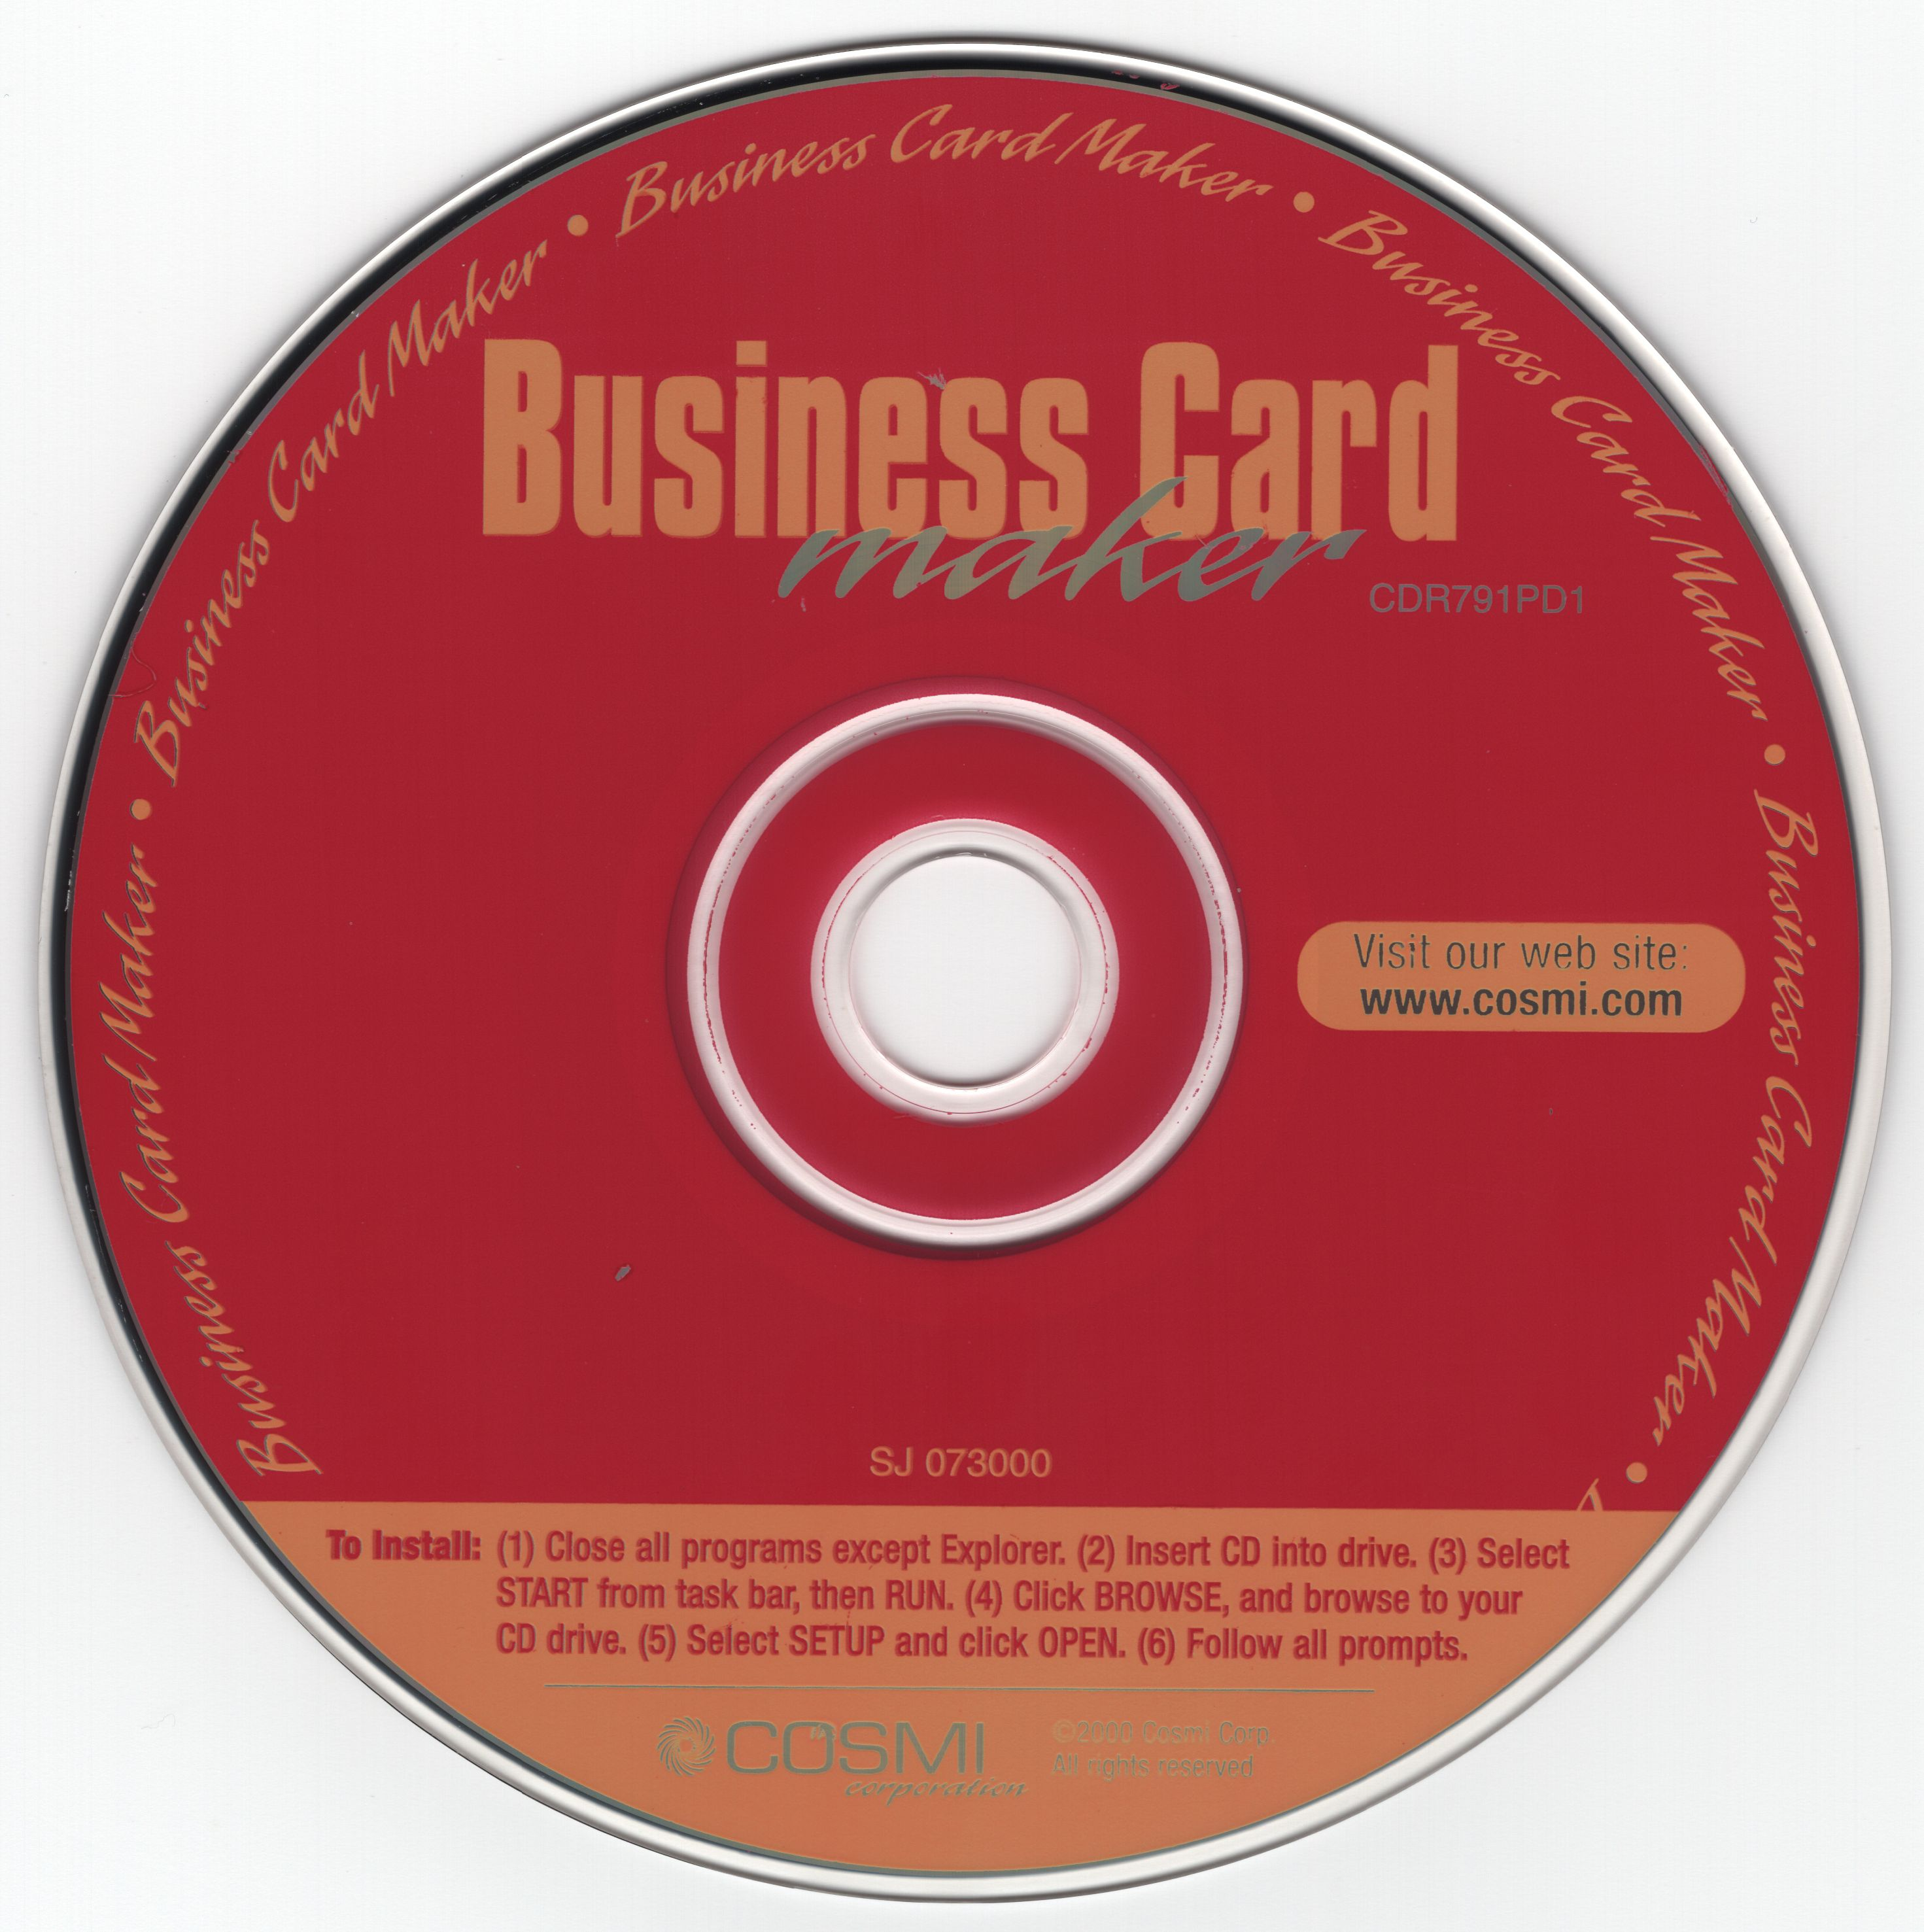 Swift Business Card Maker (Version 6.27) (CDR791PD1) (Cosmi Corporation) (2000)